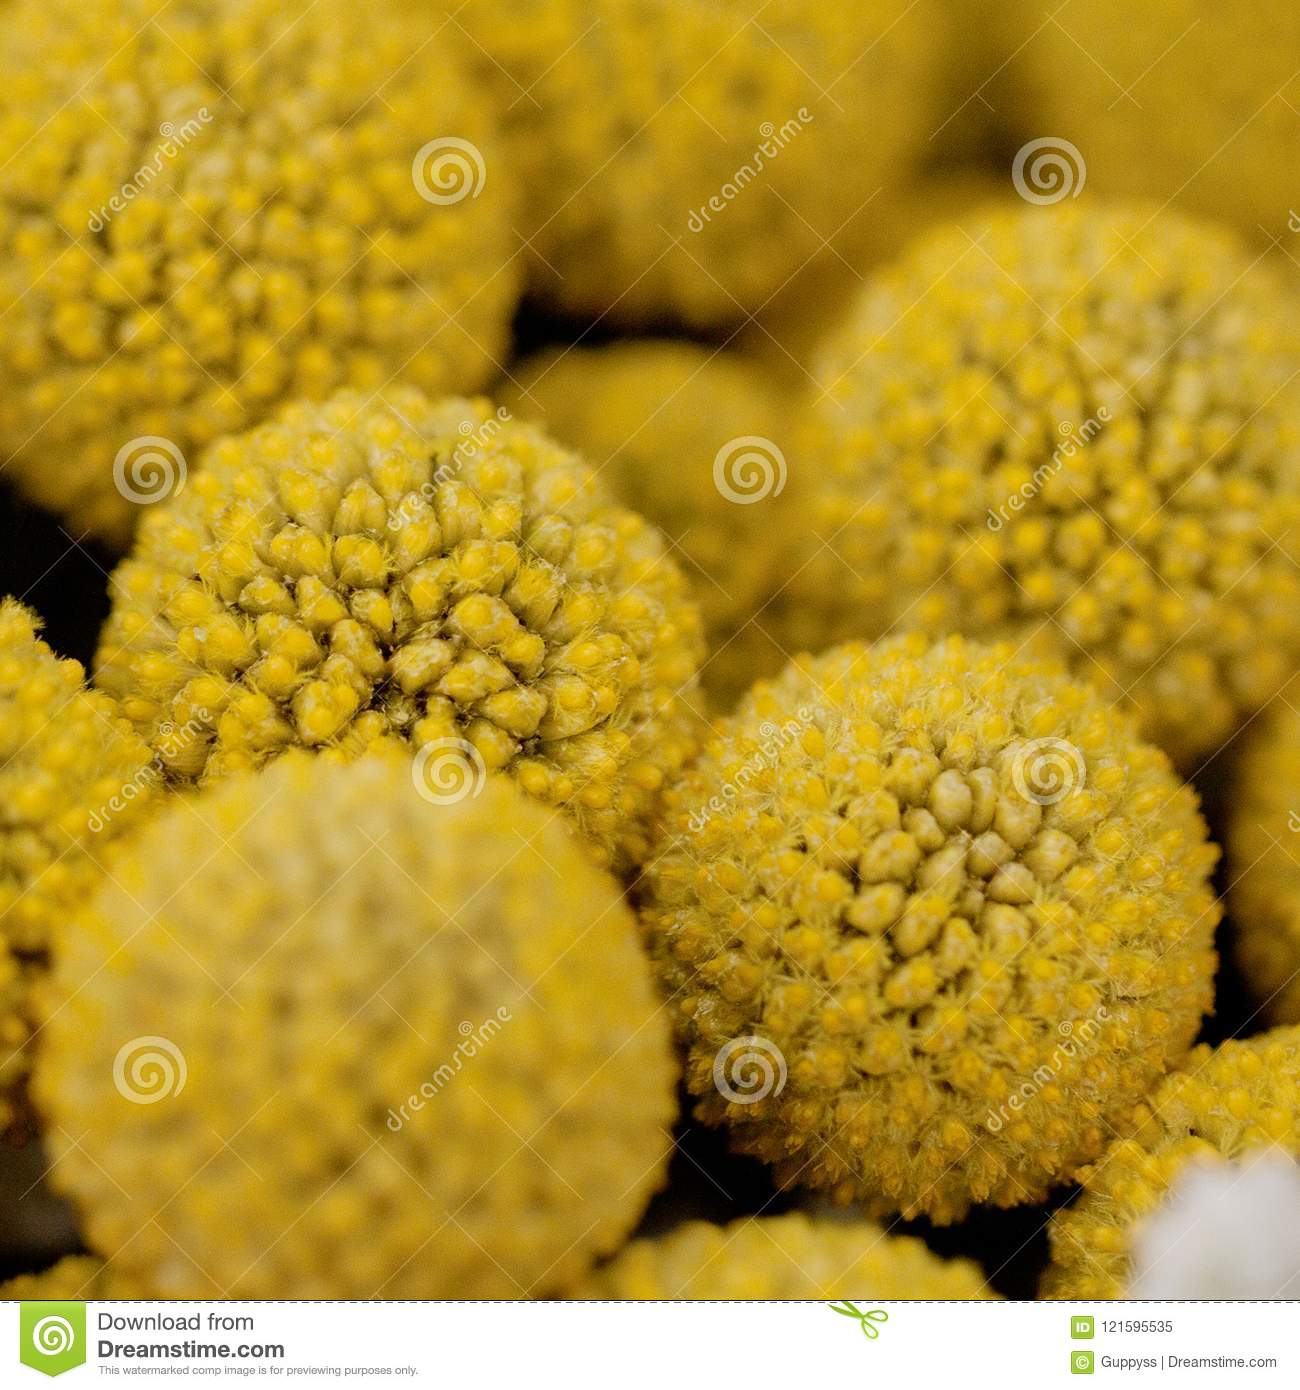 Bouquet of round yellow flowers close up stock image image of bouquet of round yellow flowers close up mightylinksfo